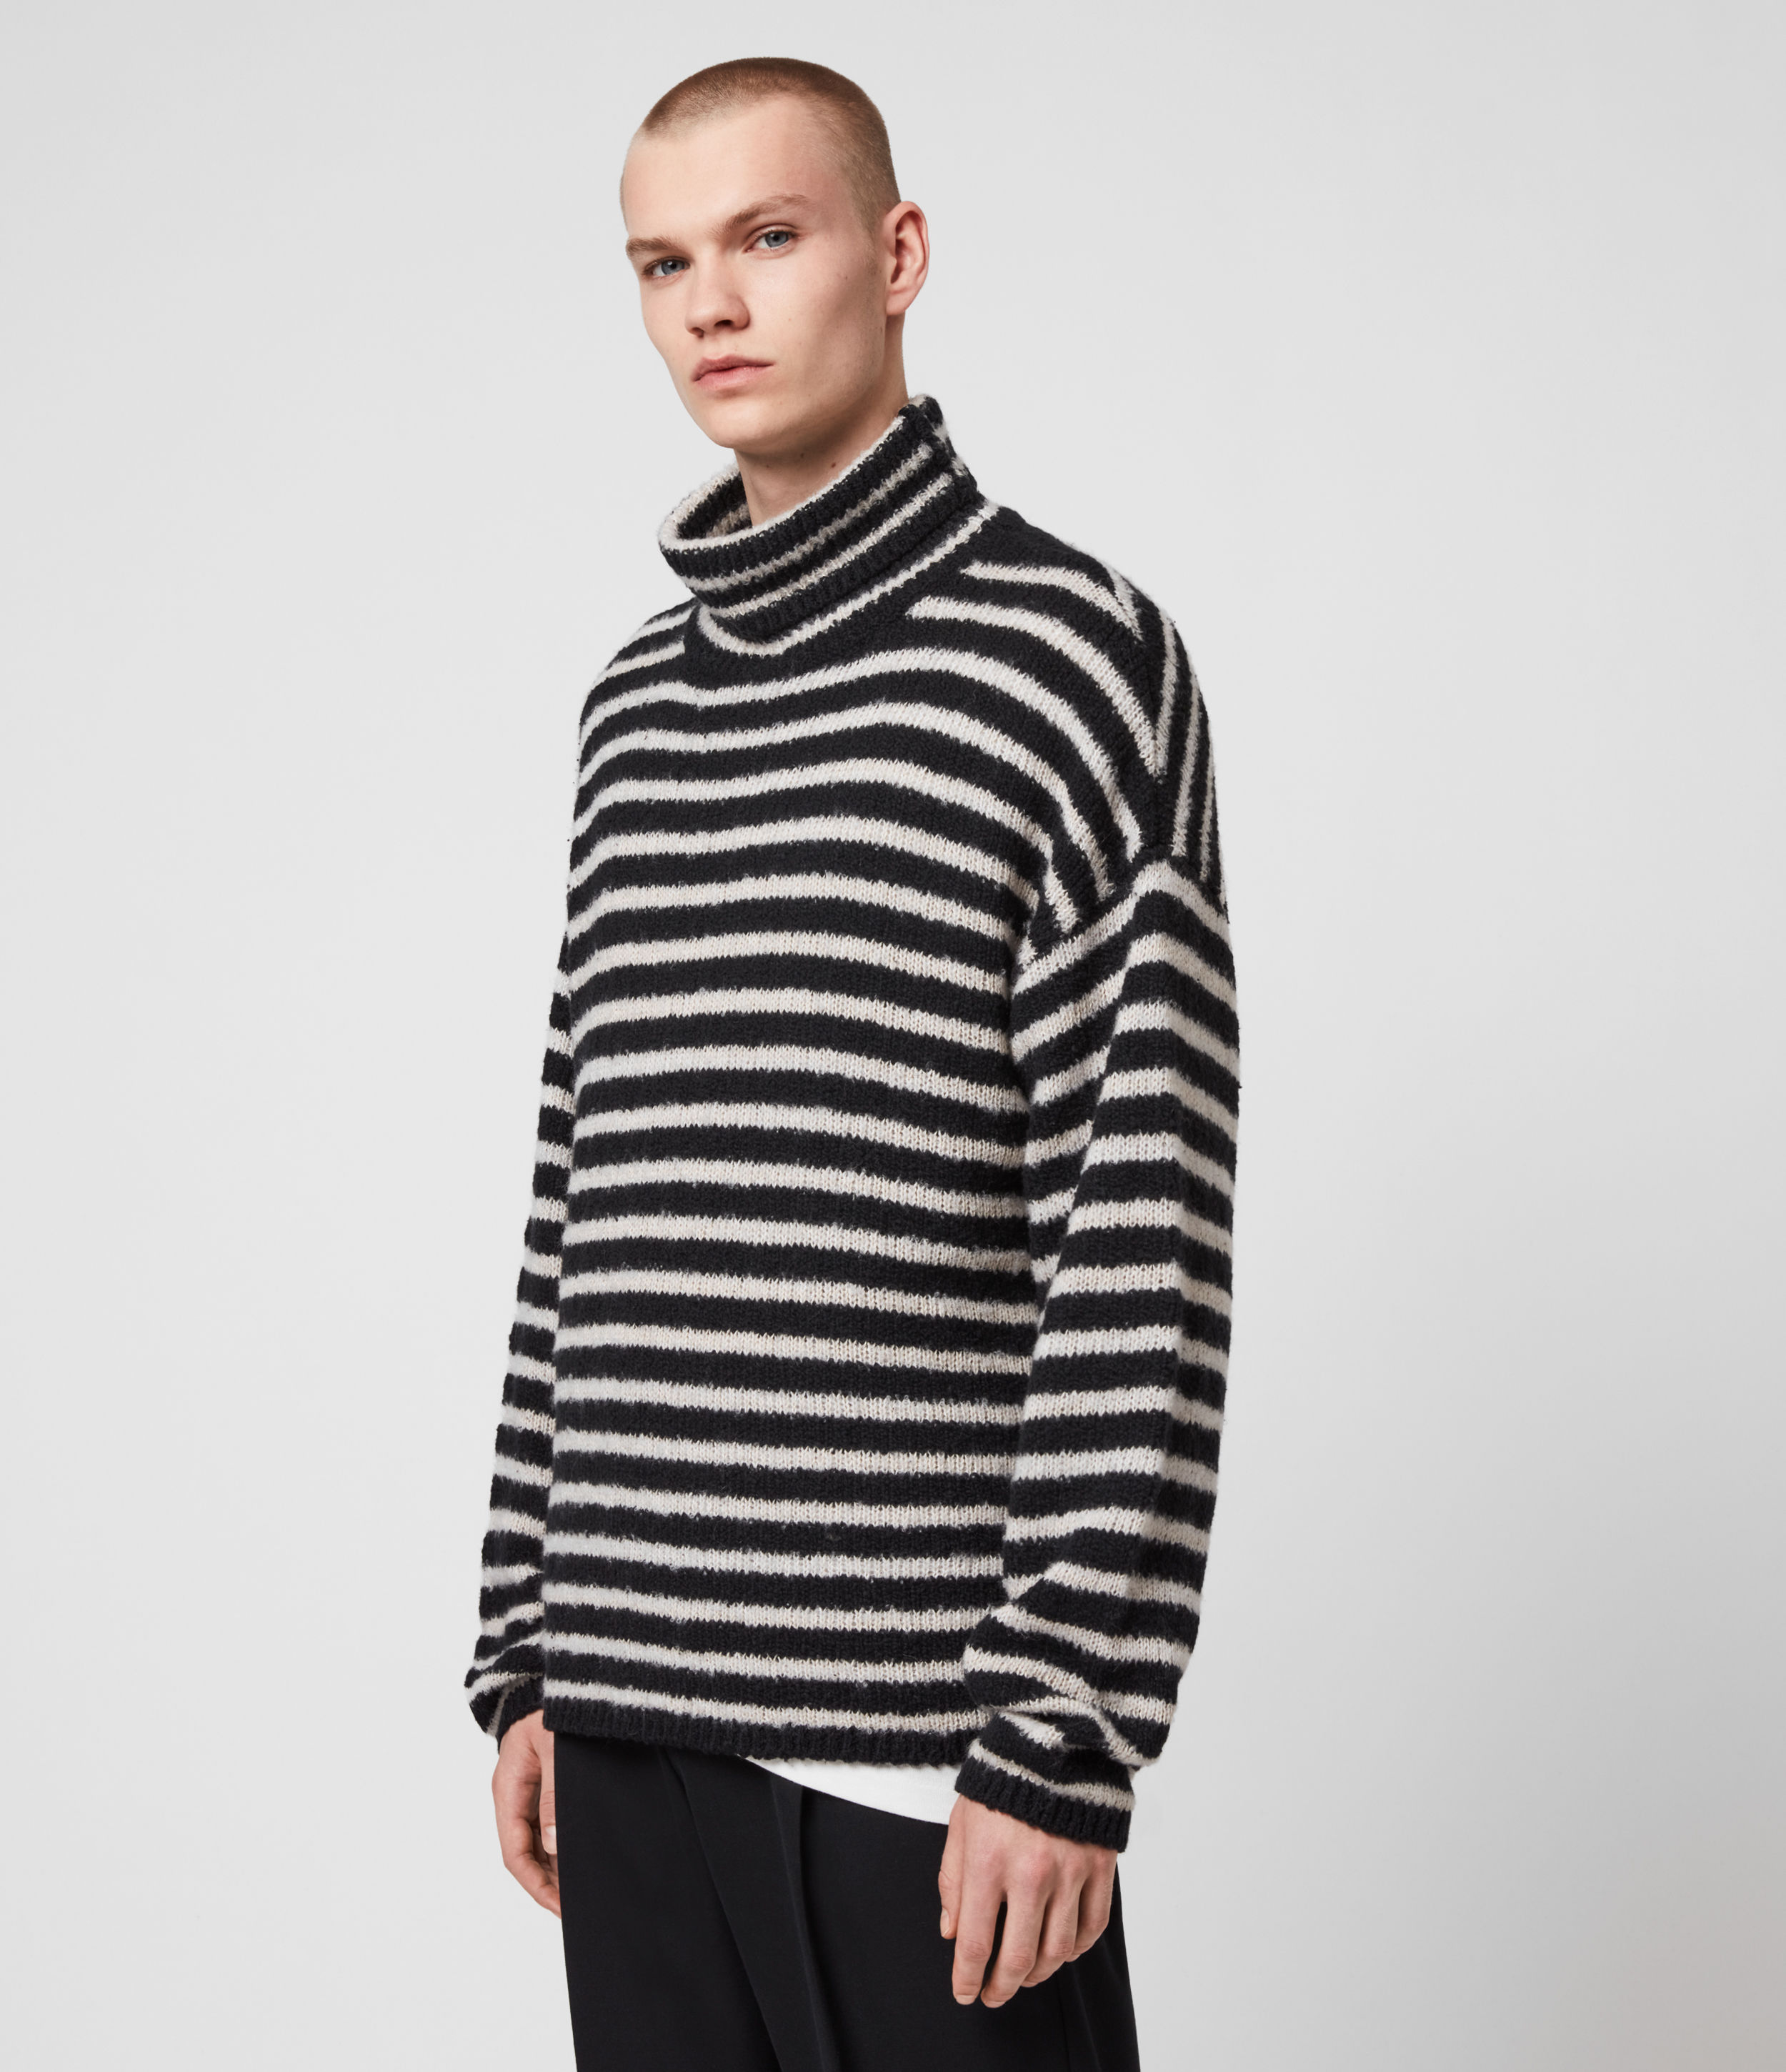 AllSaints Men's Cotton Stripe Alderney Funnel Neck Jumper, Black and White, Size: M